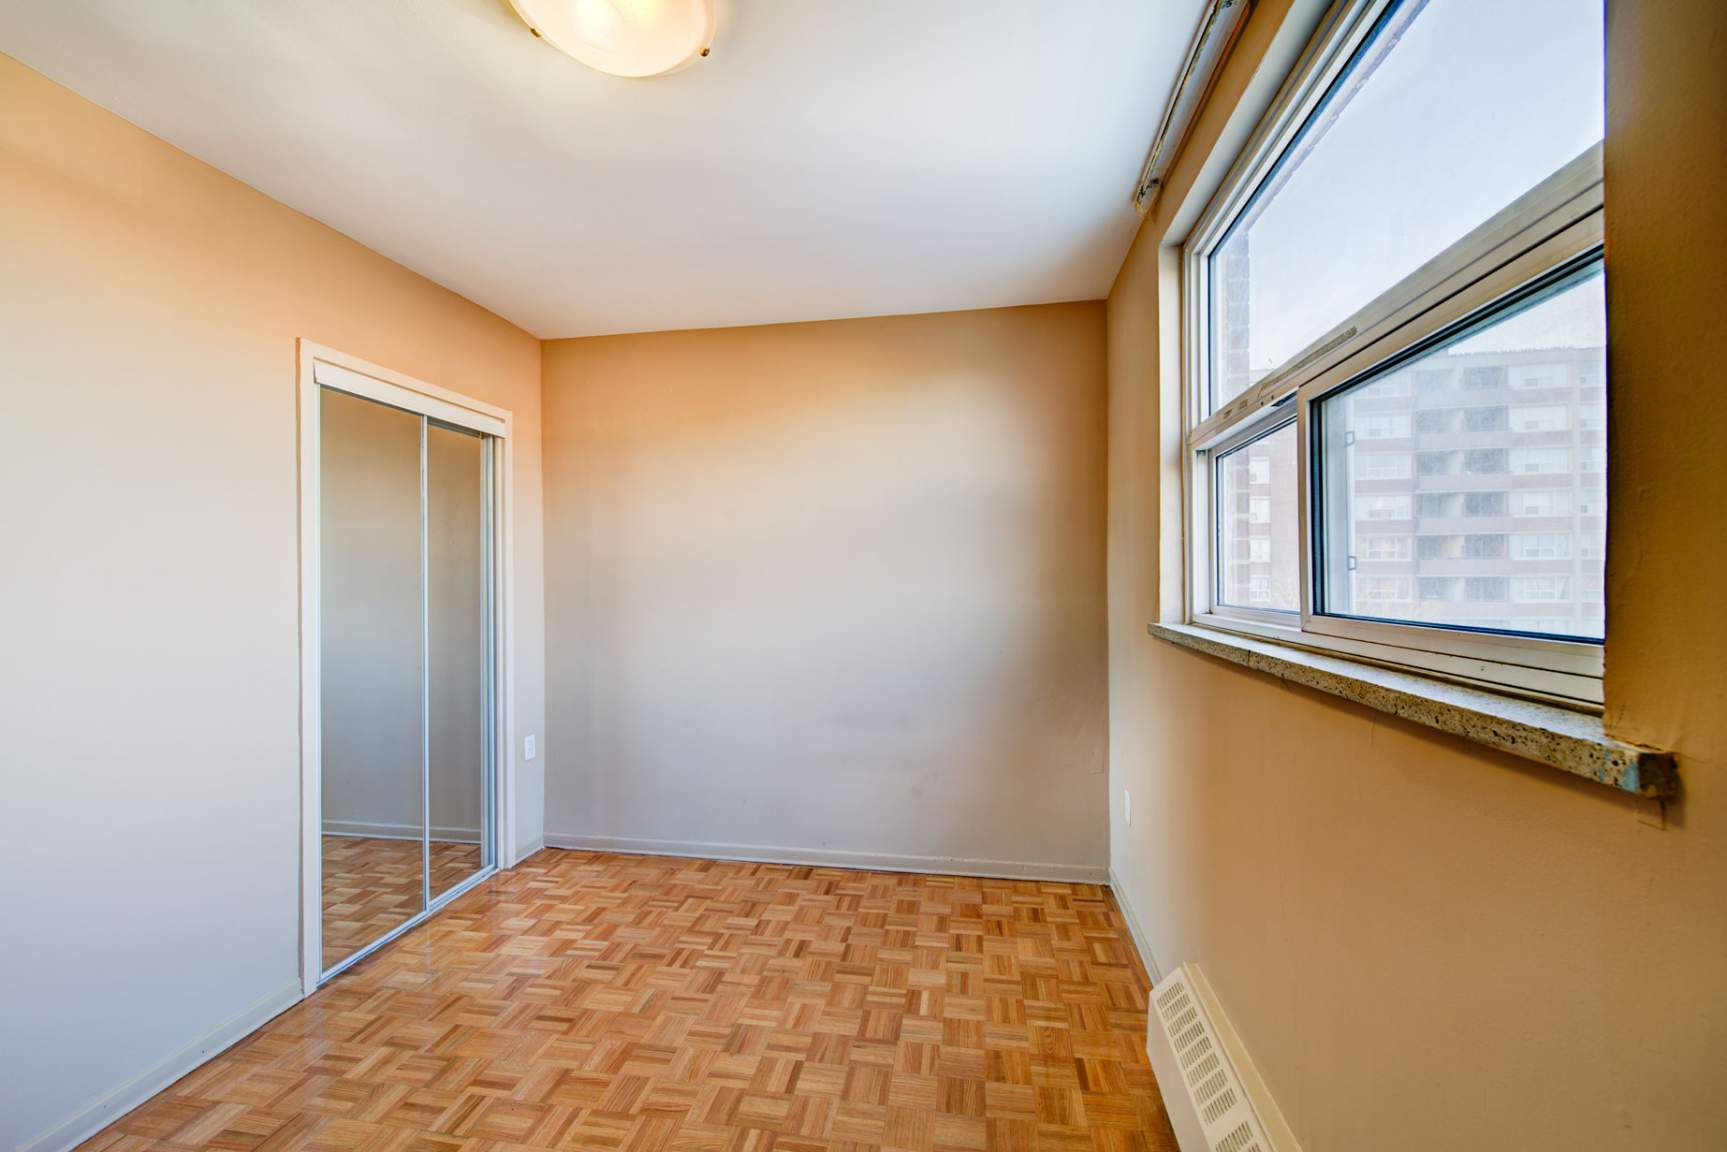 2 bedroom apartments for rent Mississauga at Strathroy ...